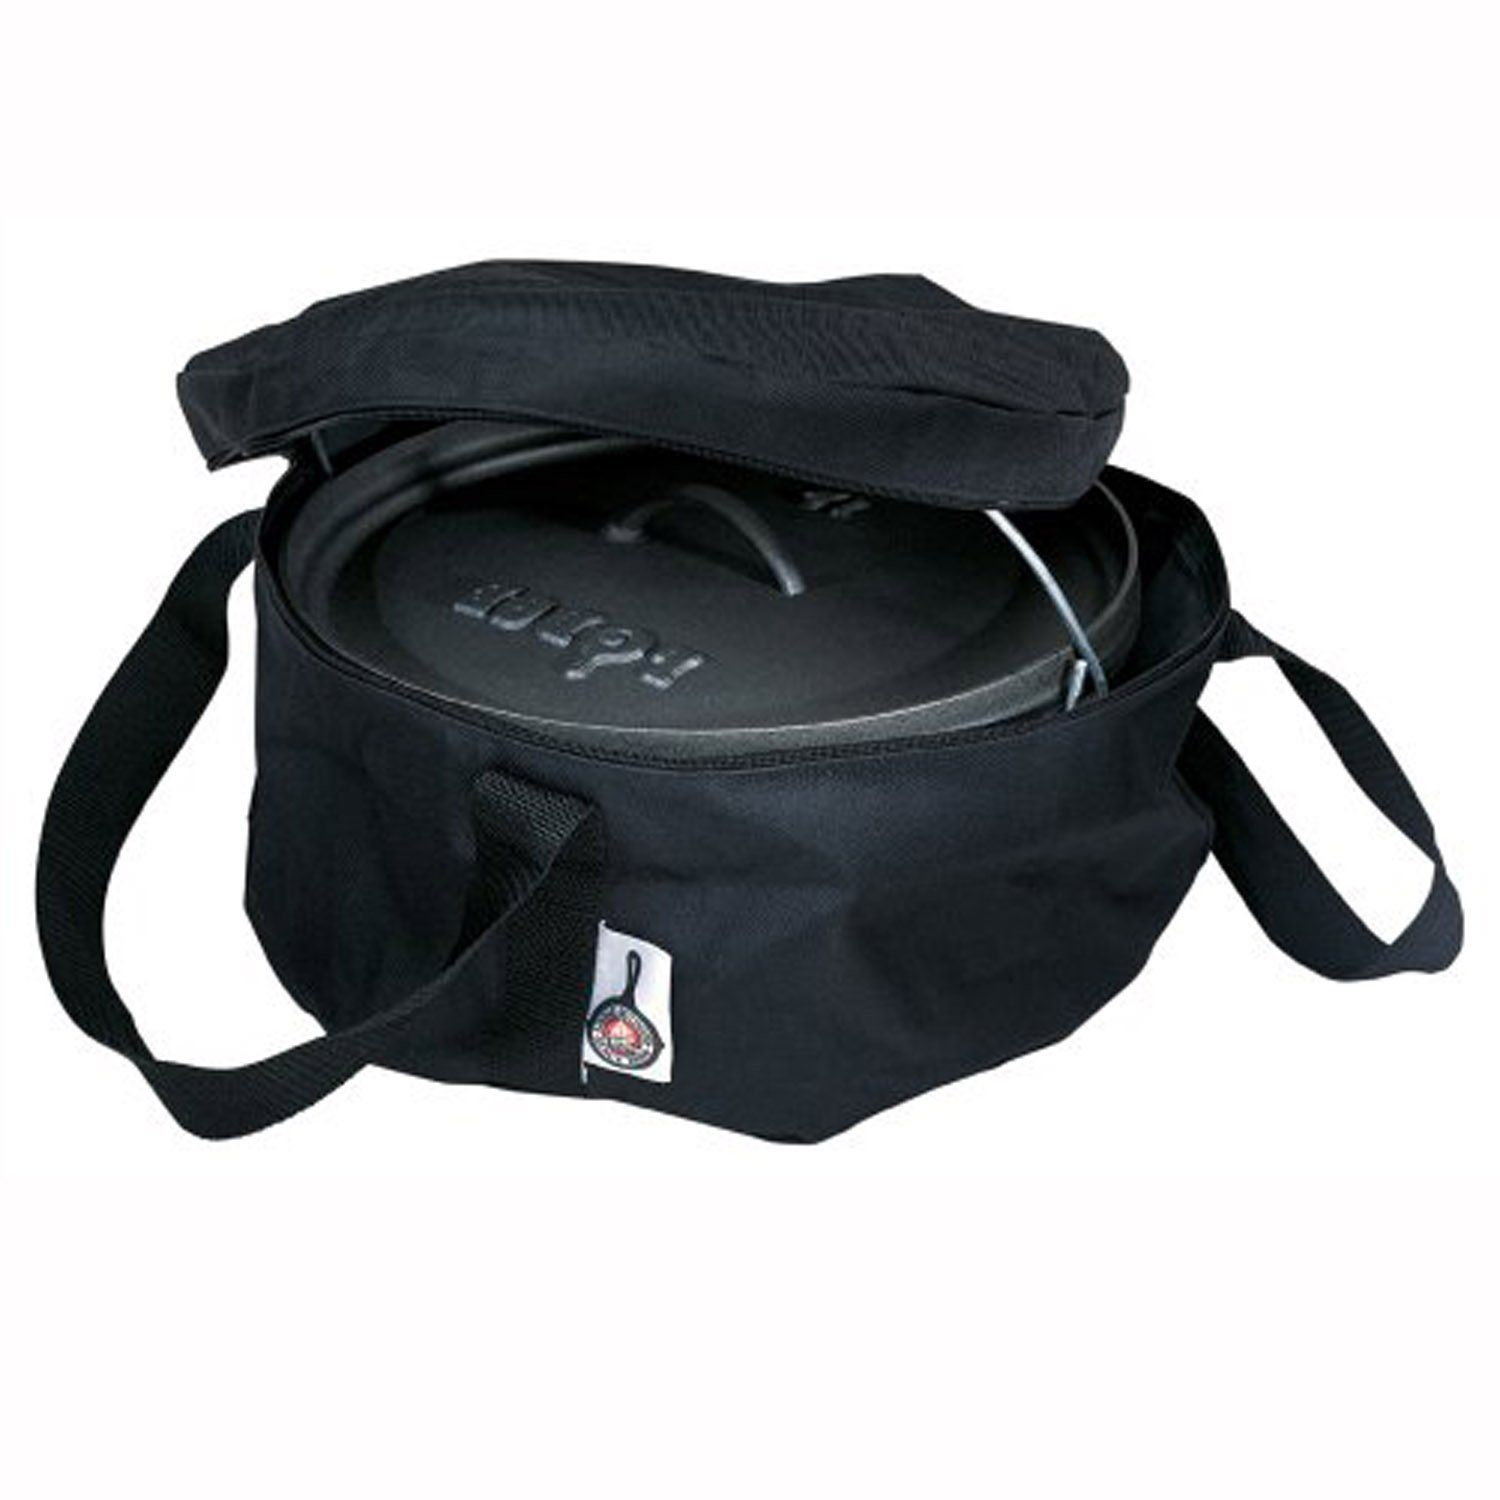 Amazon.com: Lodge A1-12 Camp Dutch Oven Tote Bag, 12-inch: Dutch Oven Case: Kitchen & Dining